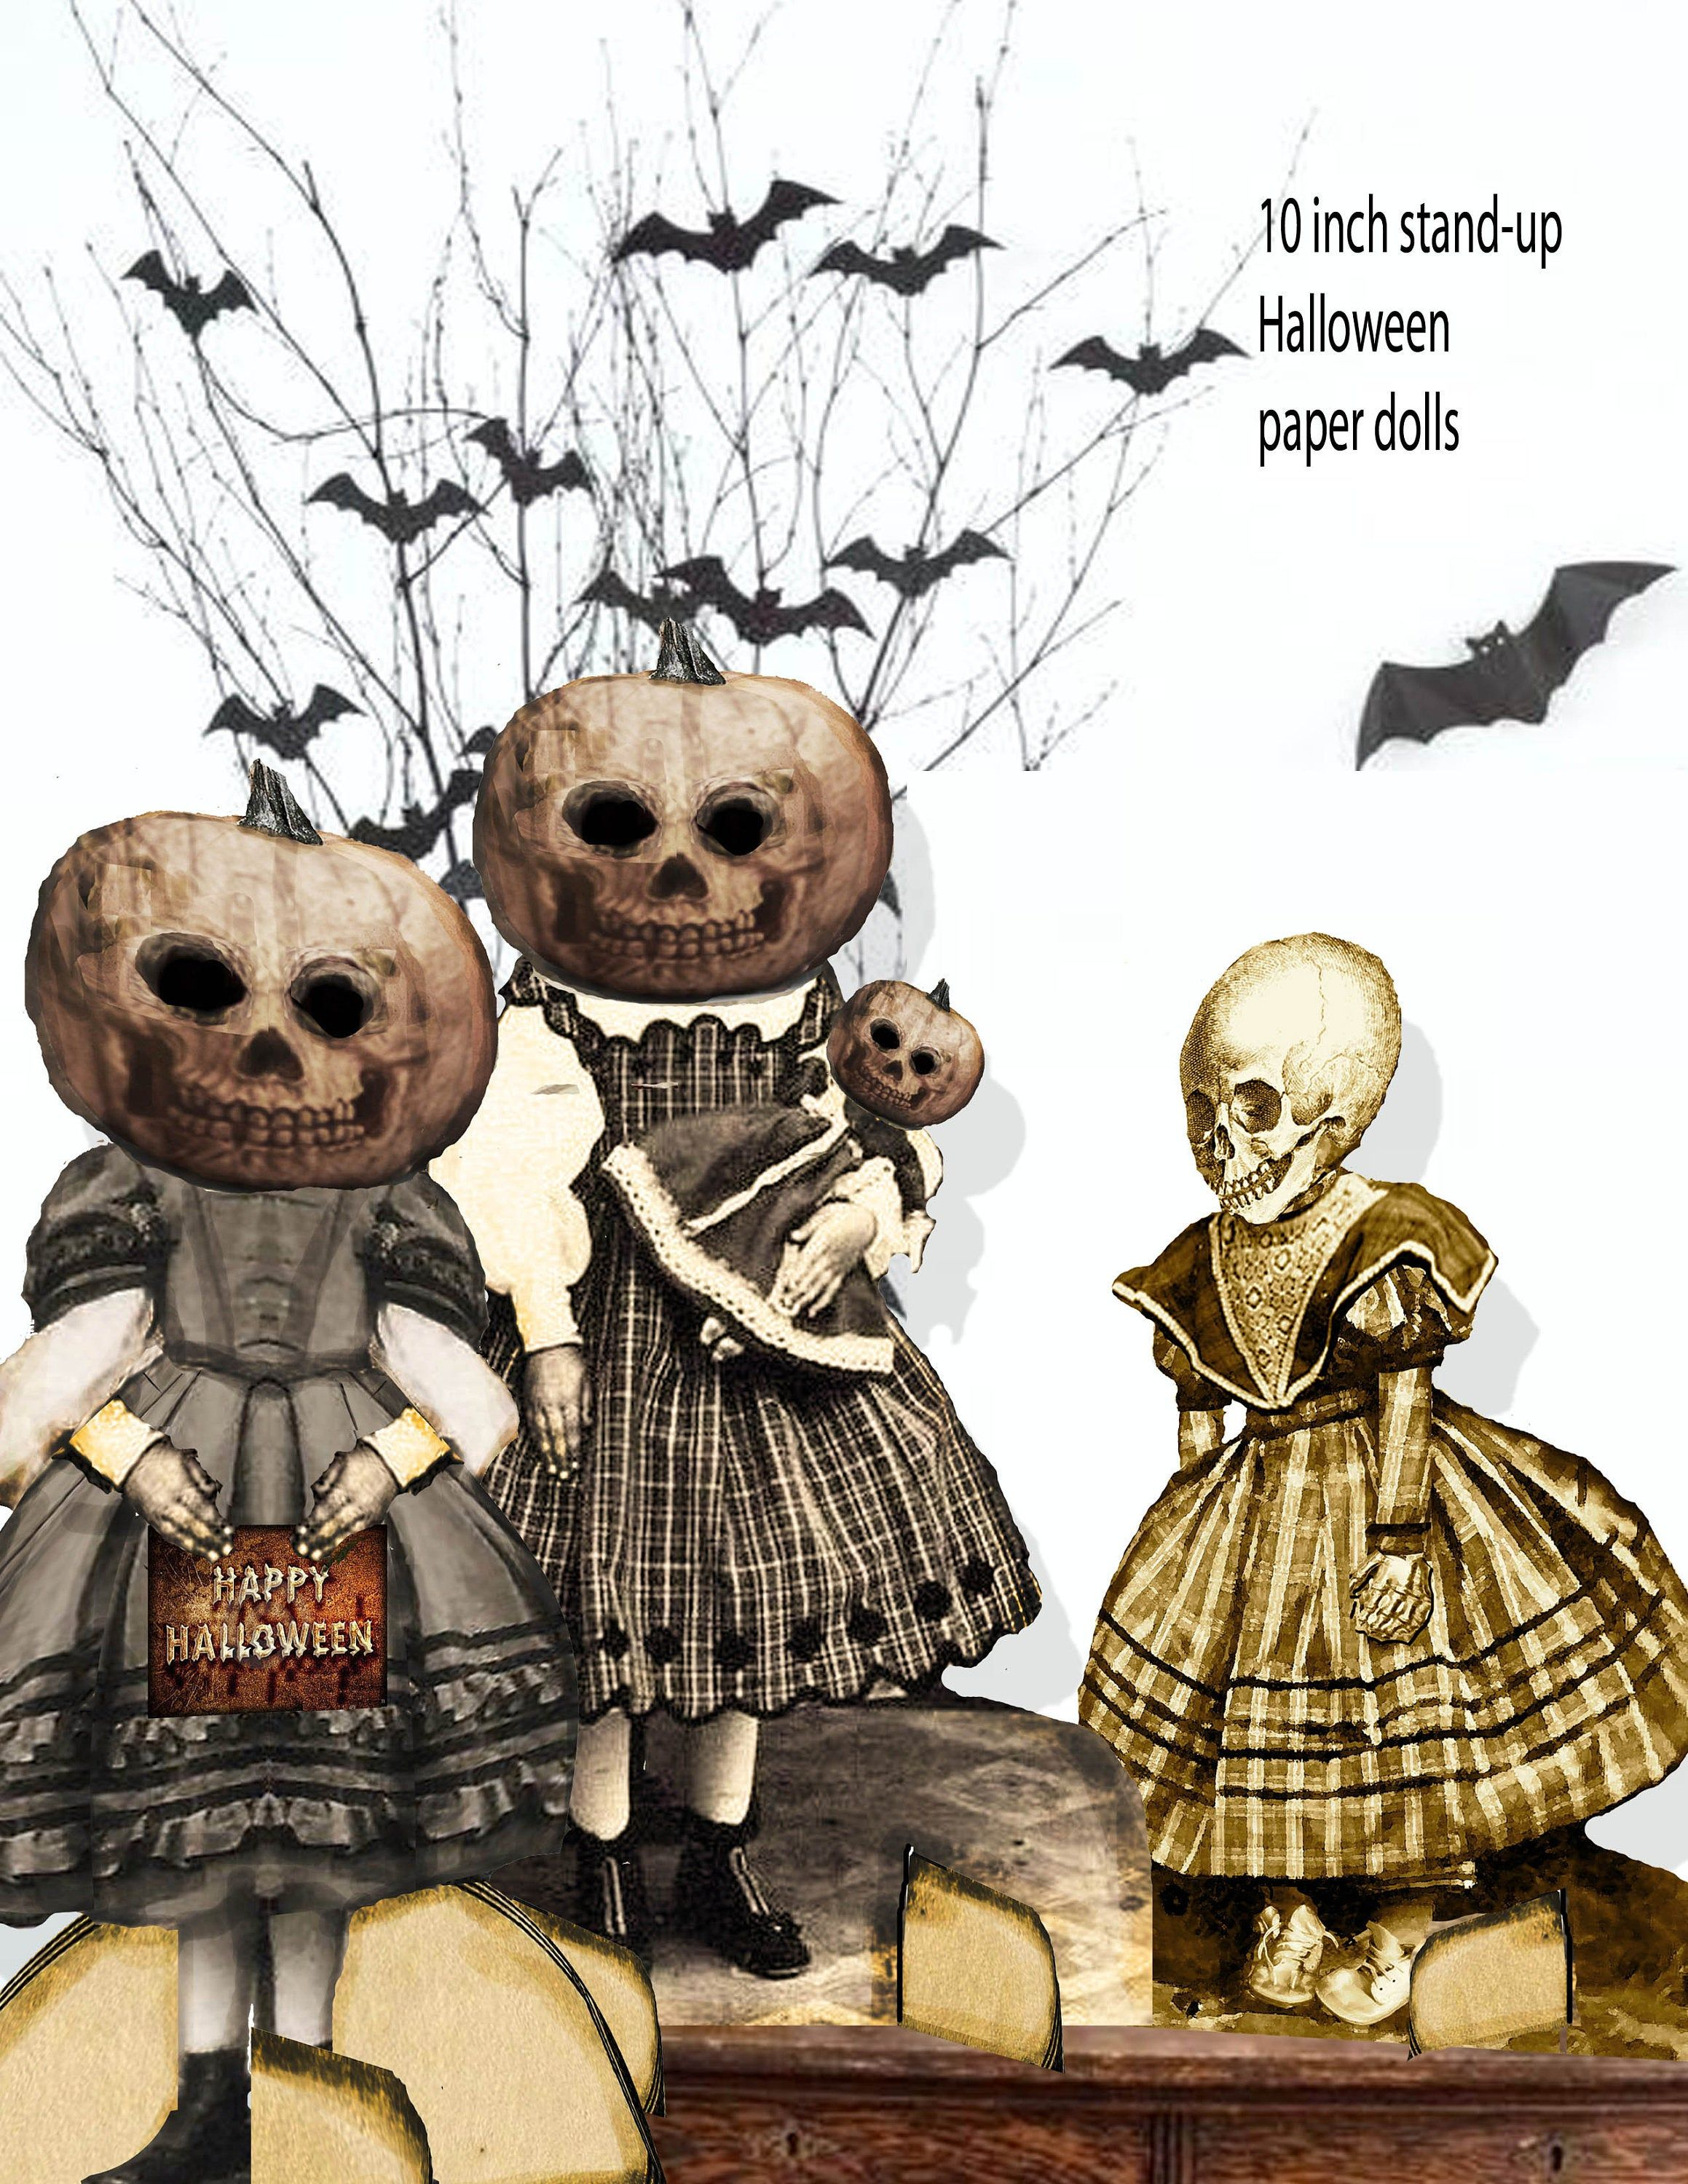 Halloween Printable Gothic Victorian Paper Skeletons And Etsy In 2020 Halloween Printables Free Halloween Printables Halloween Decorations To Make